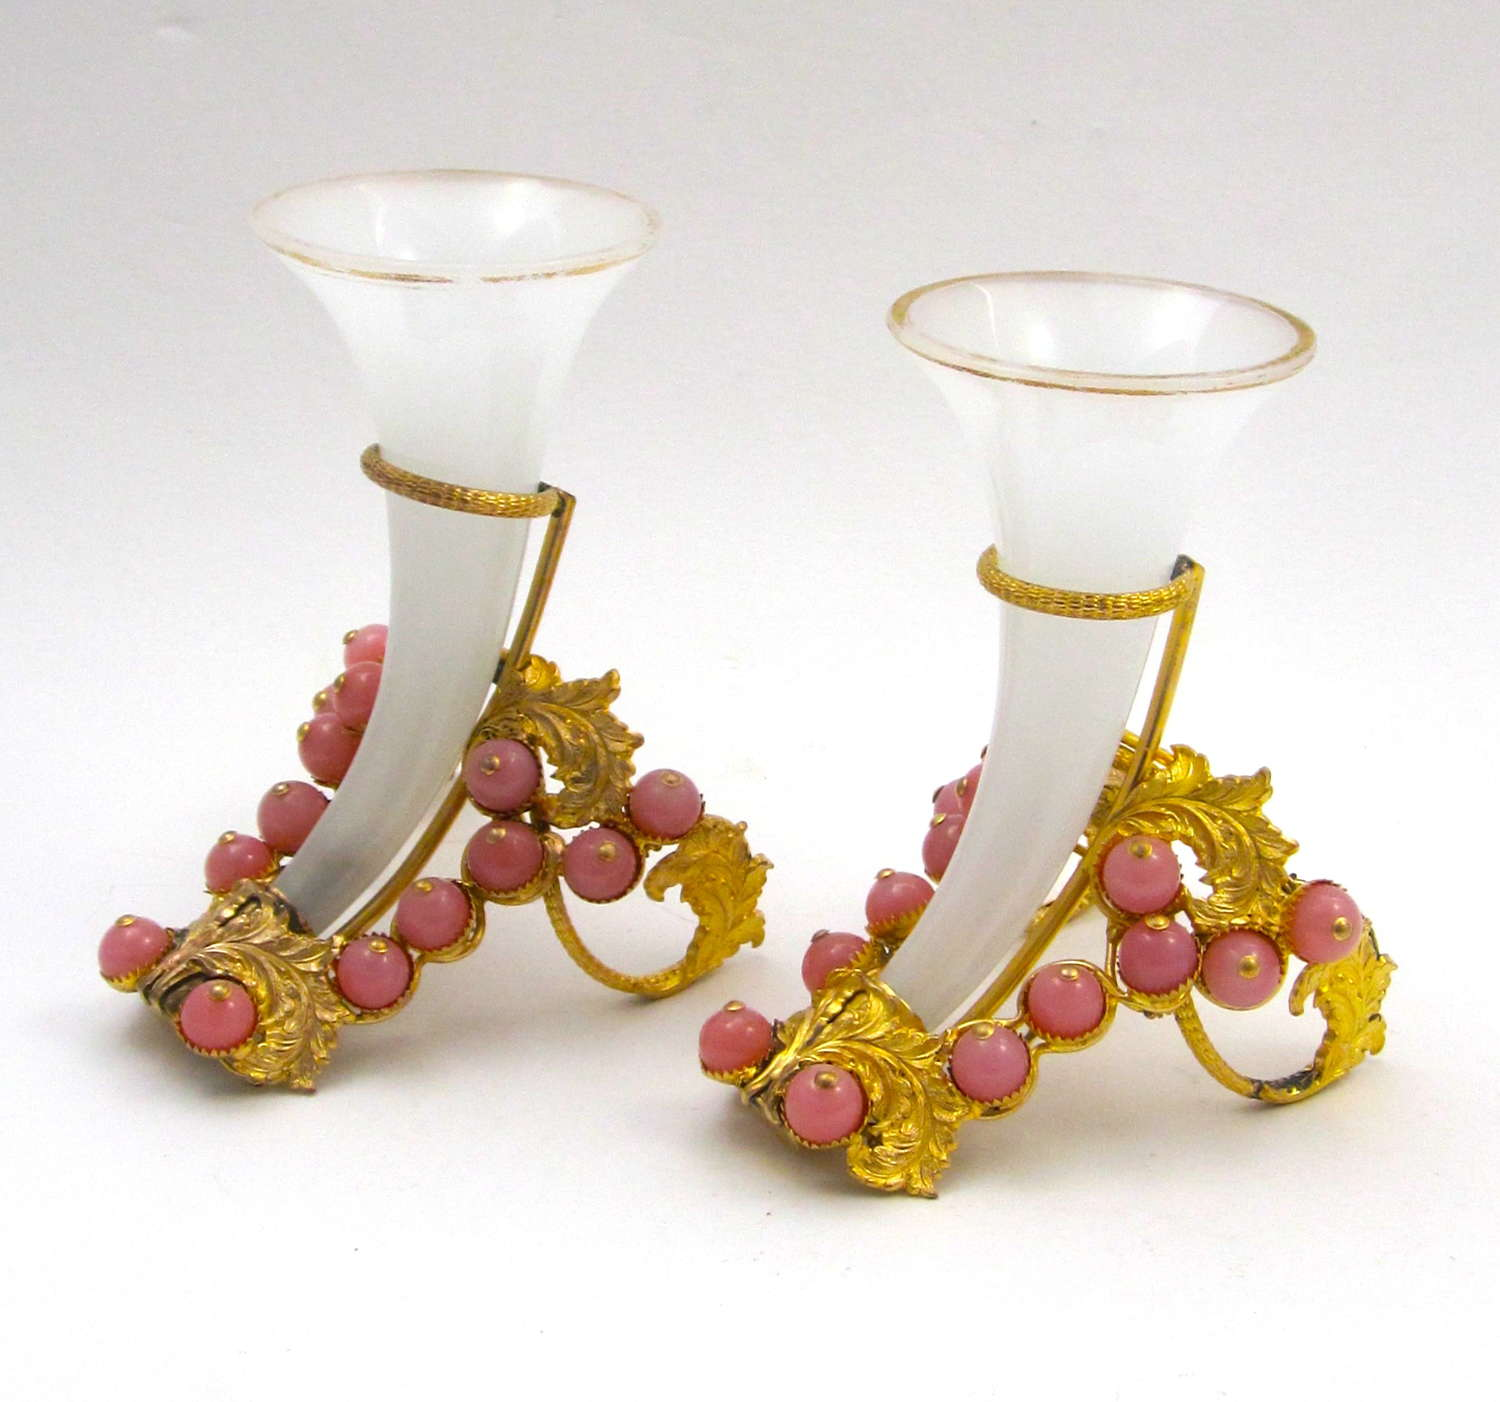 Pair of Rare Antique French White Opaline Glass Cornucopia